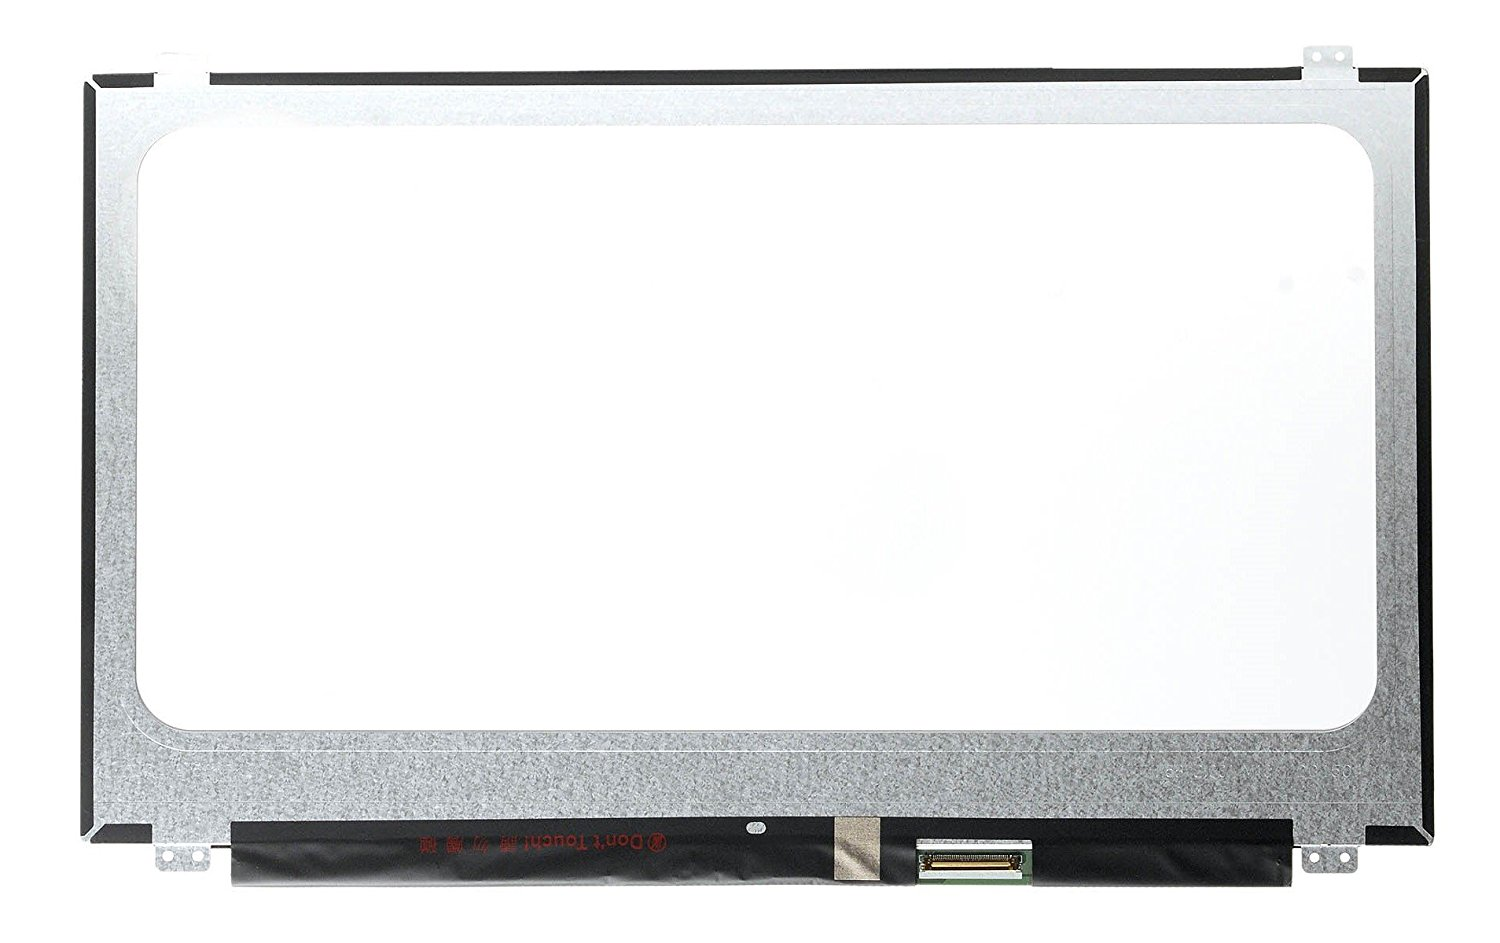 For Dell Inspiron 3558 15.6 LED LCD Touch Screen Display WXGA LTN156AR36-001 free shipping b156xtk01 0 n156bgn e41 laptop lcd screen panel touch displayfor dell inspiron 15 5558 vostro 15 3558 jj45k